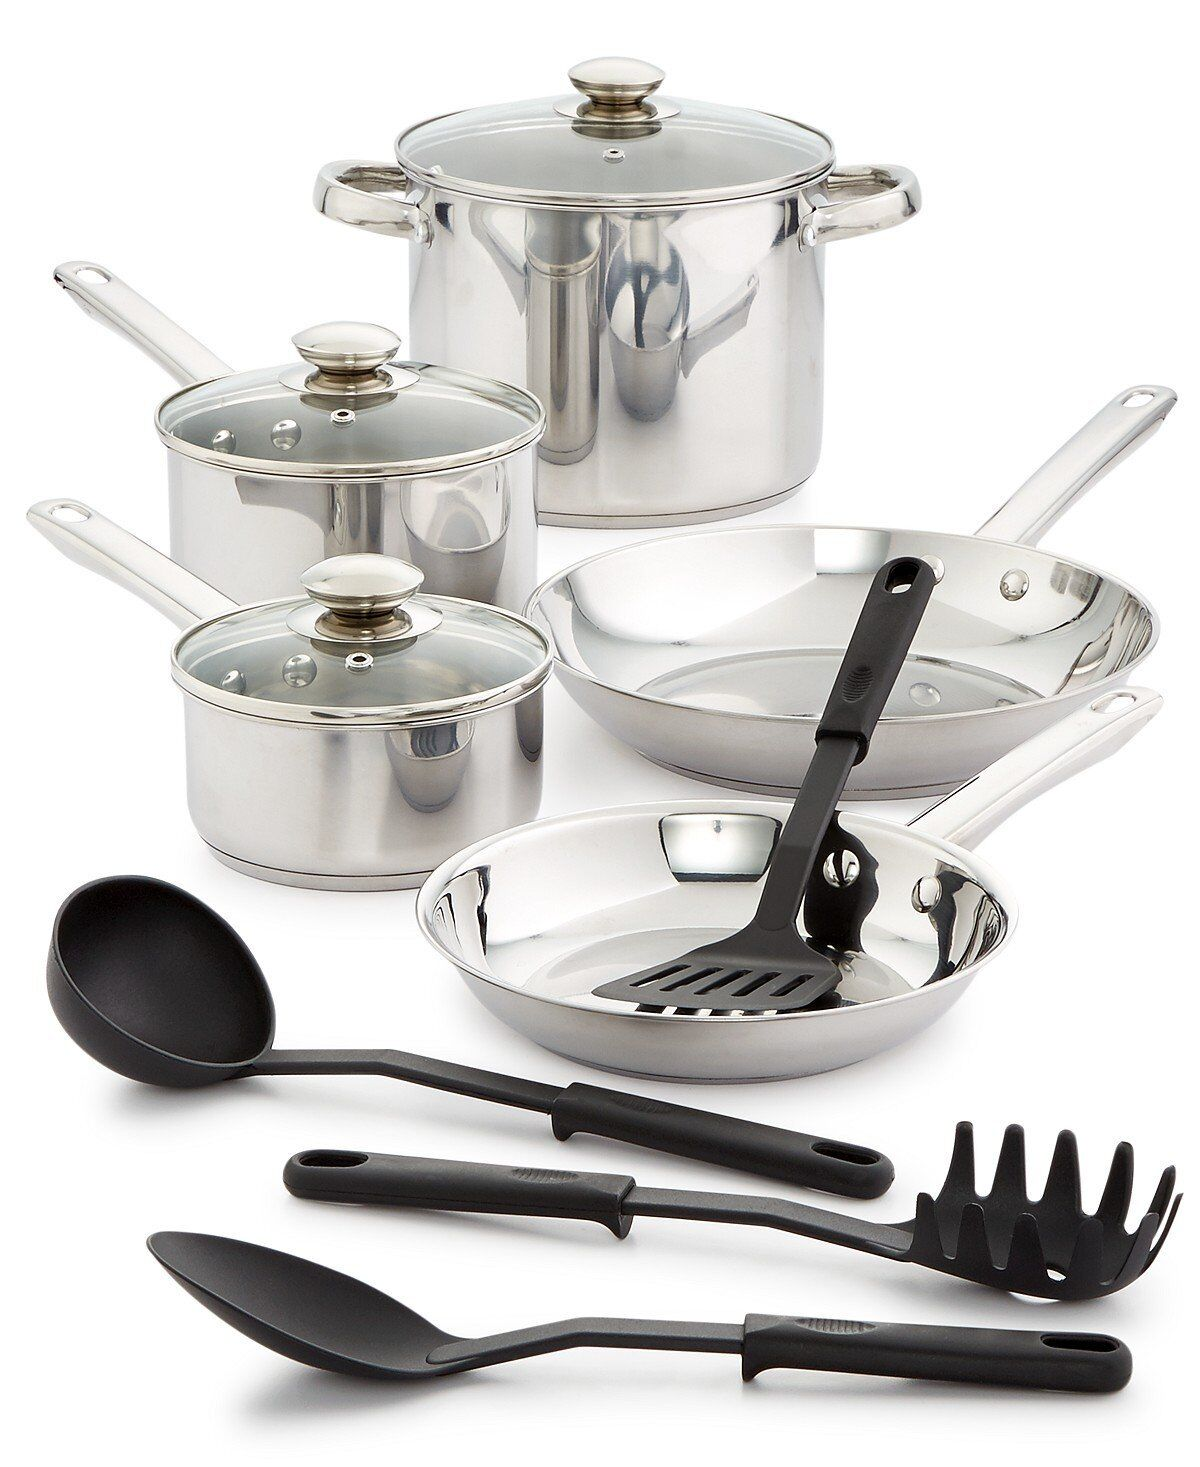 Bella 12 Pc Stainless Steel Cookware Set Oven Safe Pans Lids